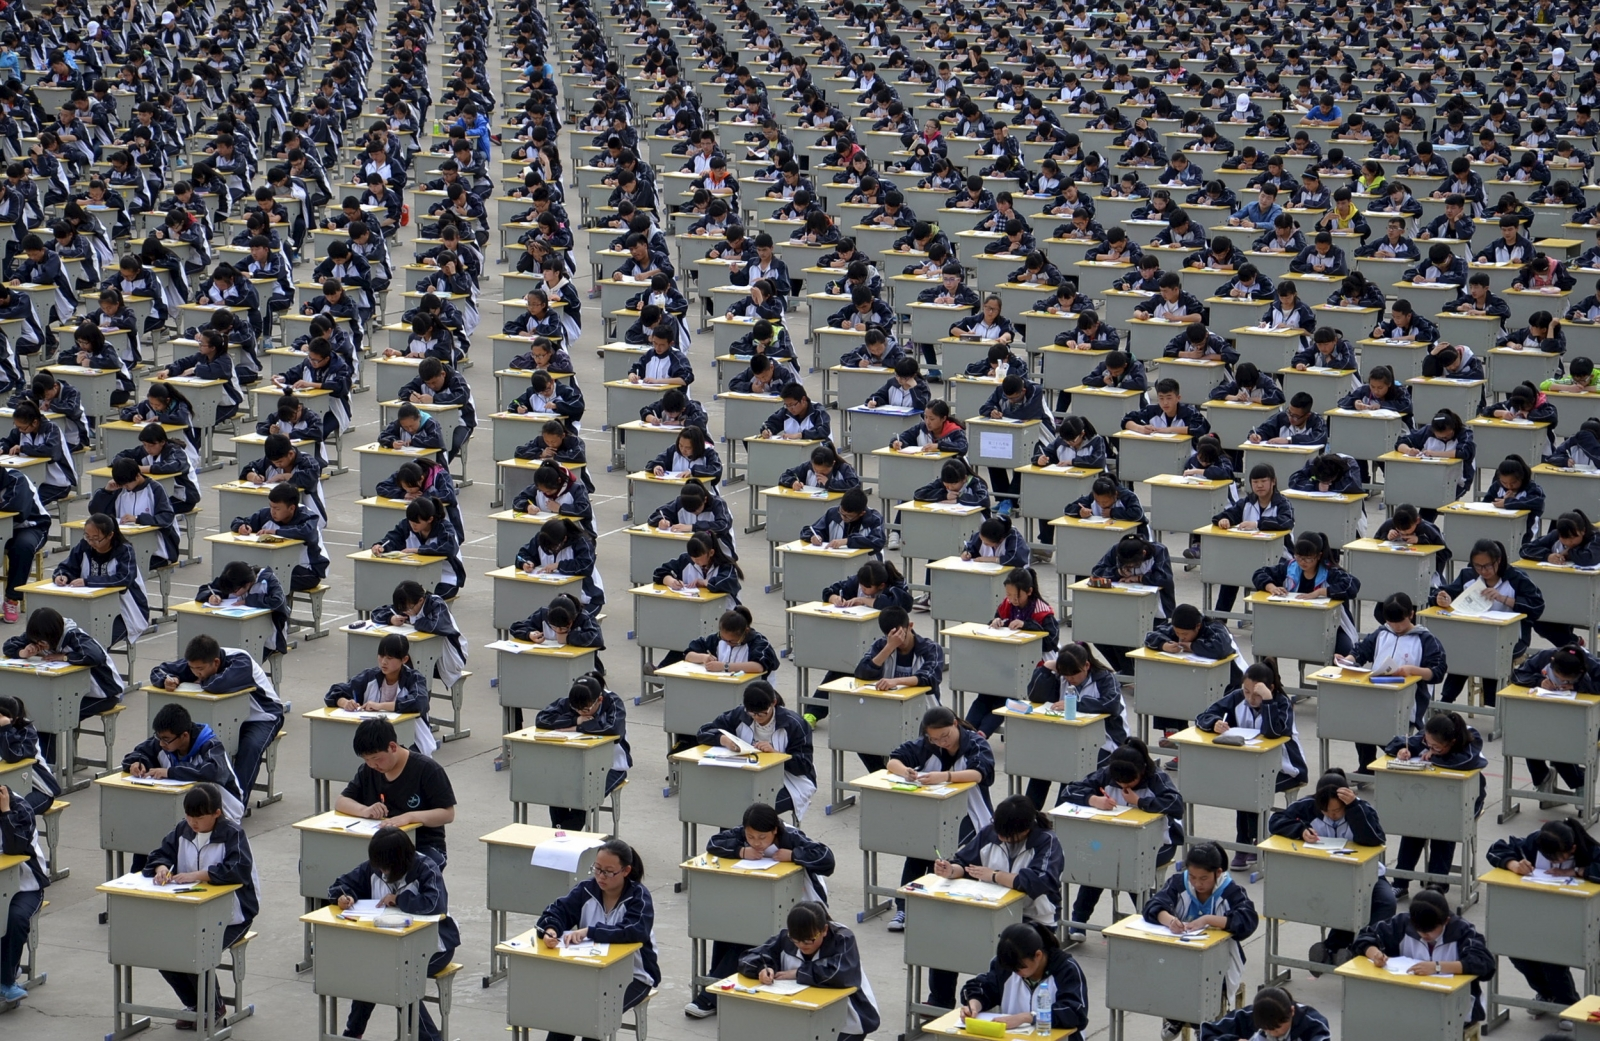 udents take an examination on